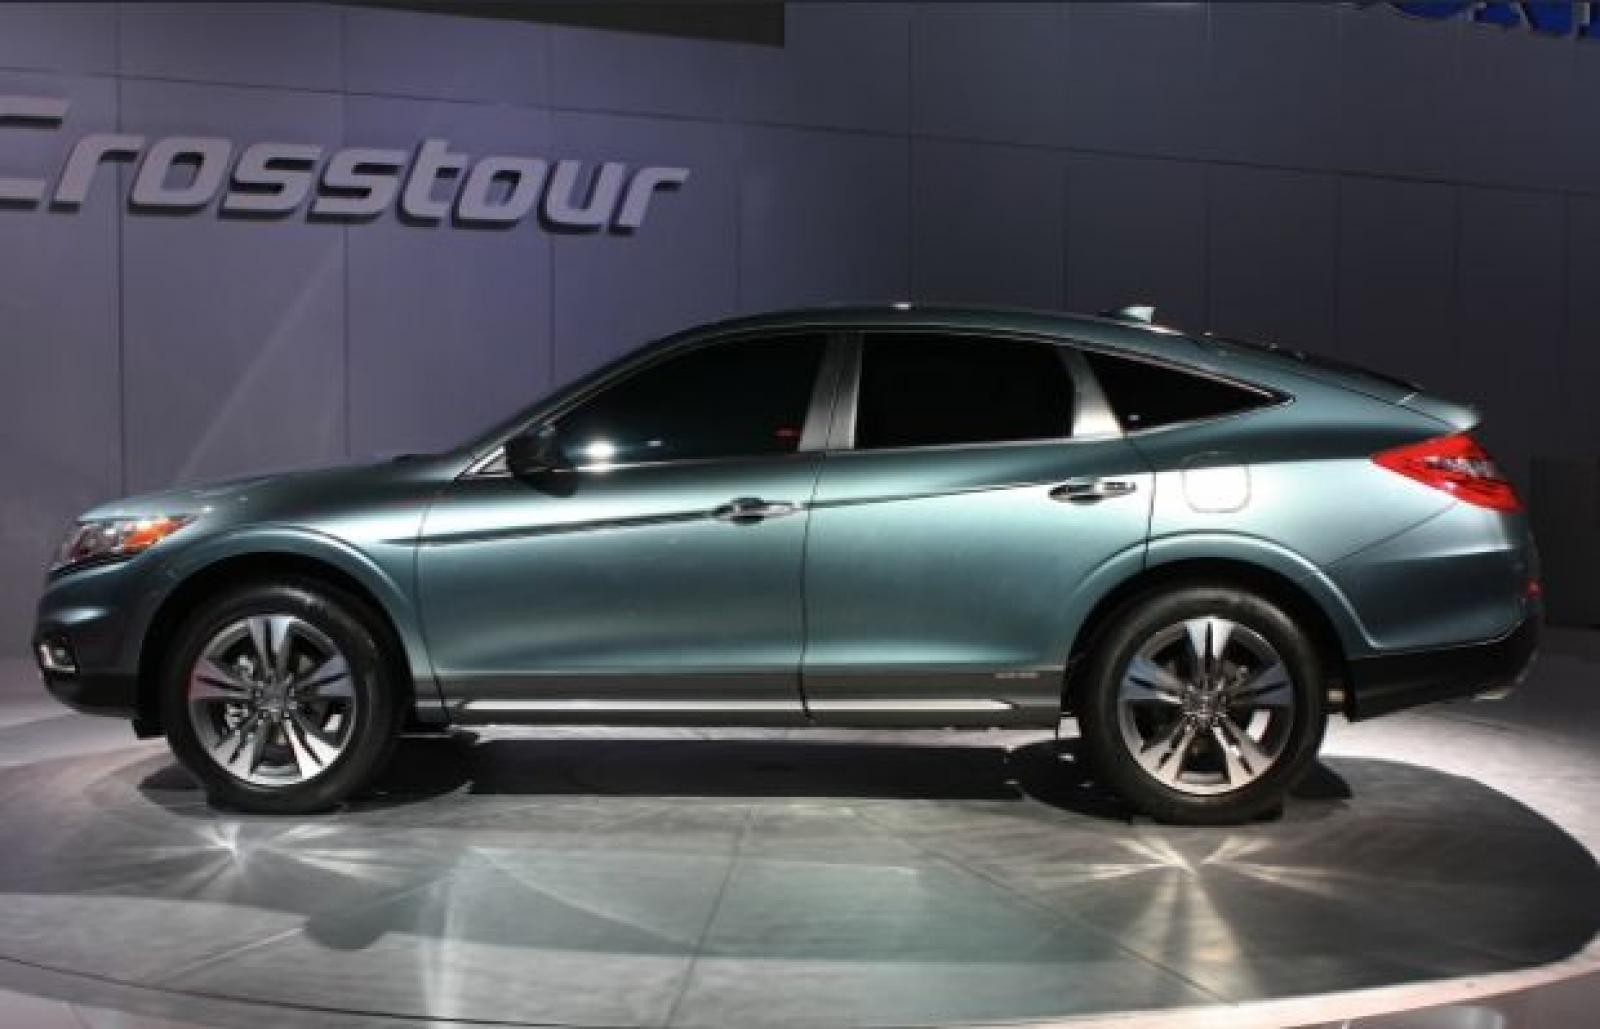 The mid-size CrossTours are durable Honda used cars.